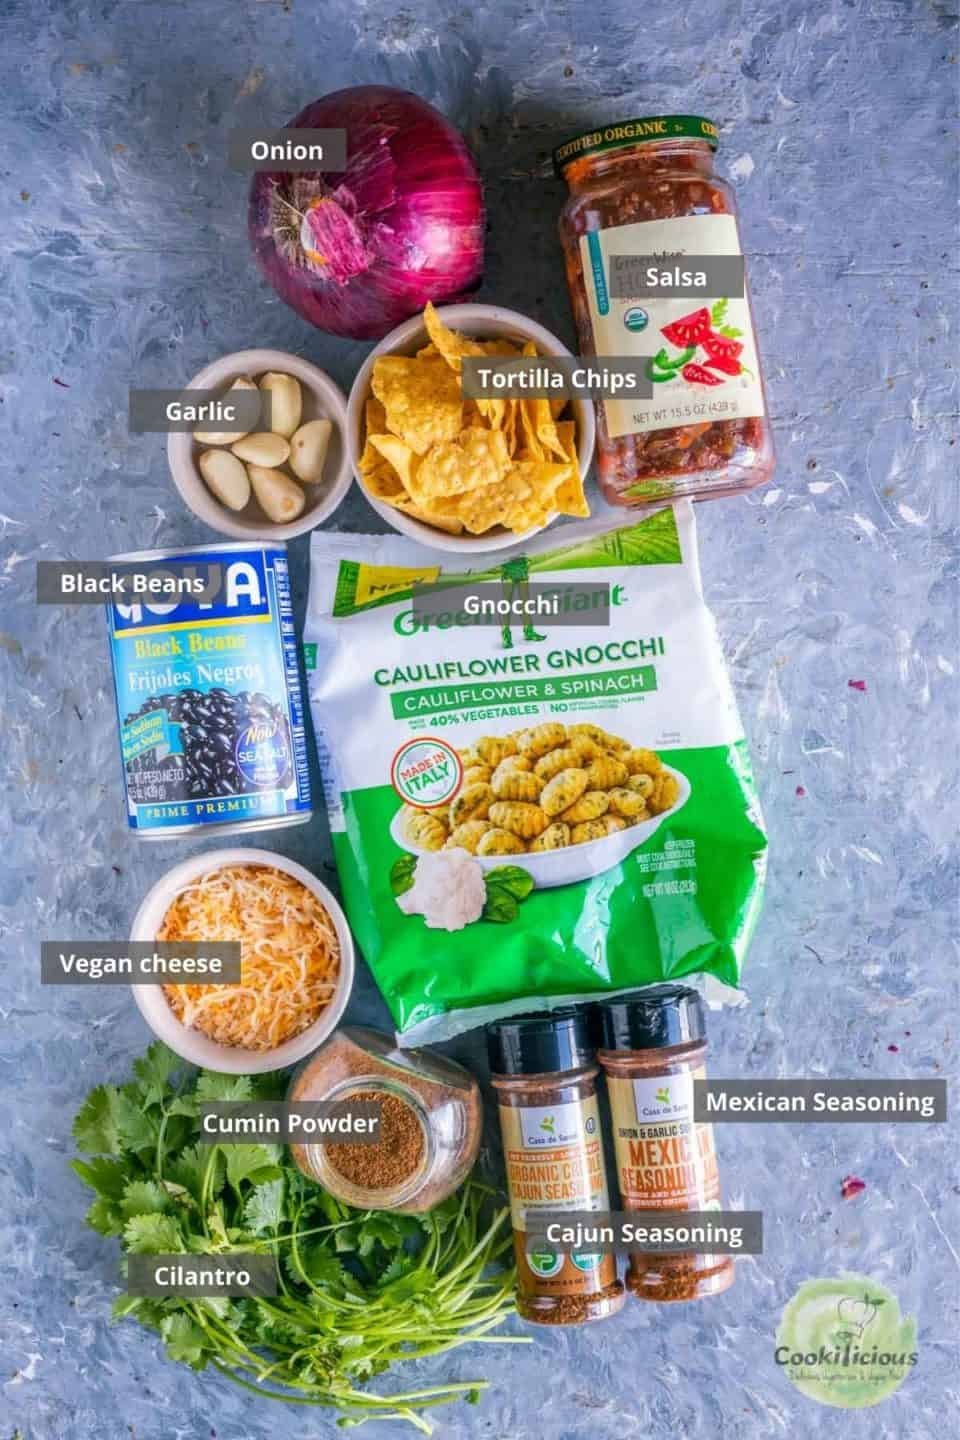 all the ingredients needed to make Vegan Mexican casserole placed on a table with labels on them